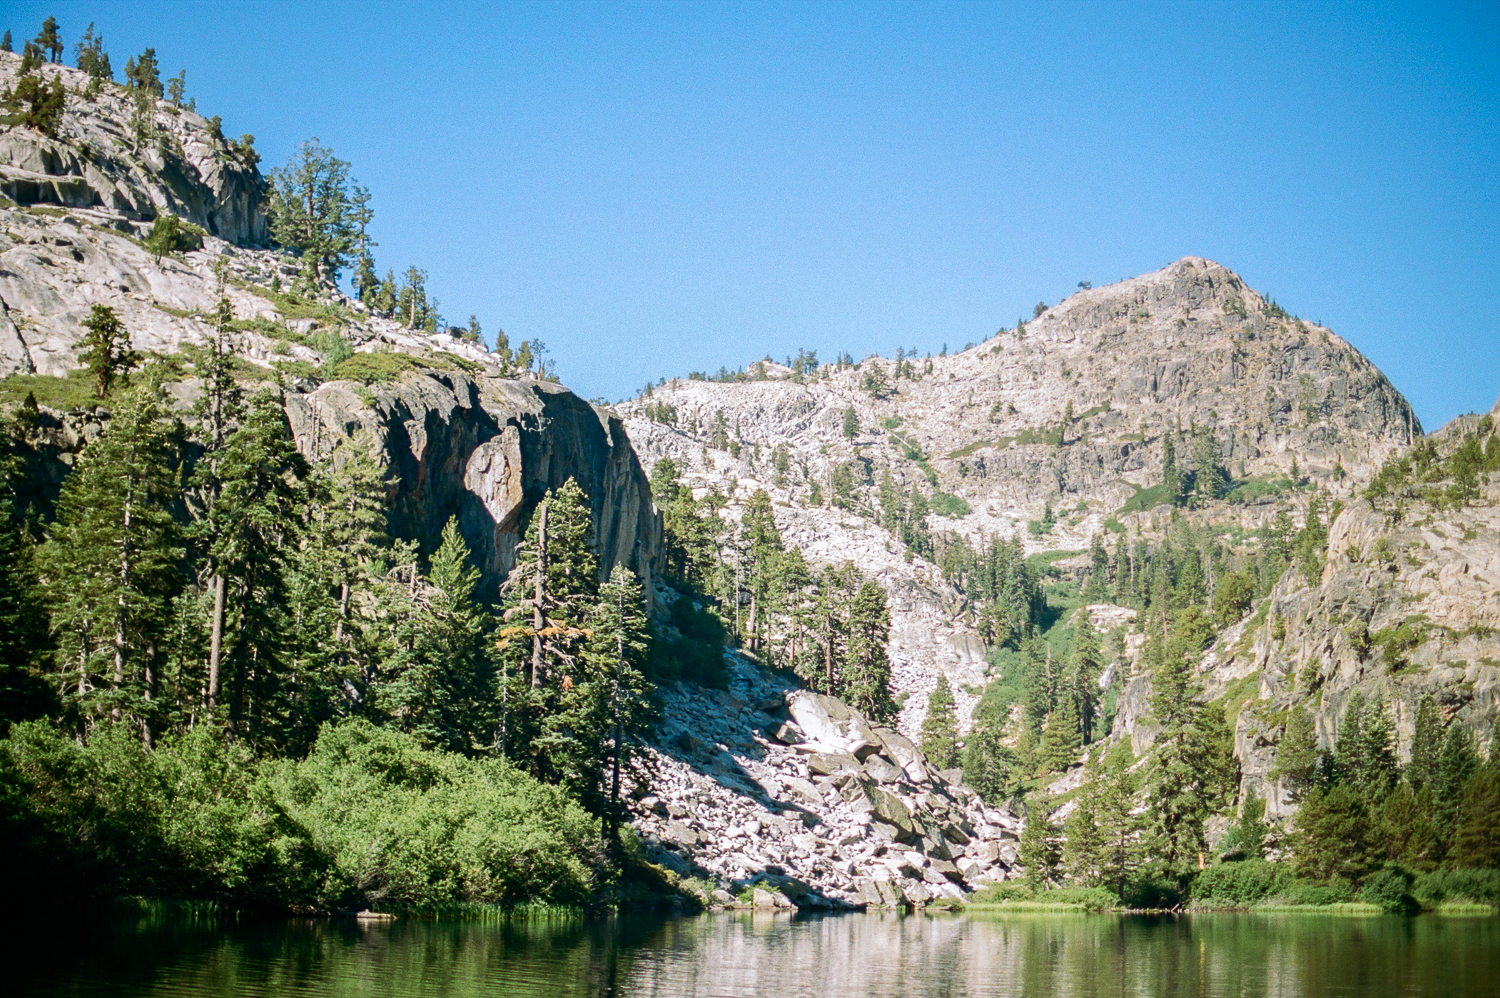 Eagle Lake in South Lake Tahoe | Nikon F100 on Portra 400